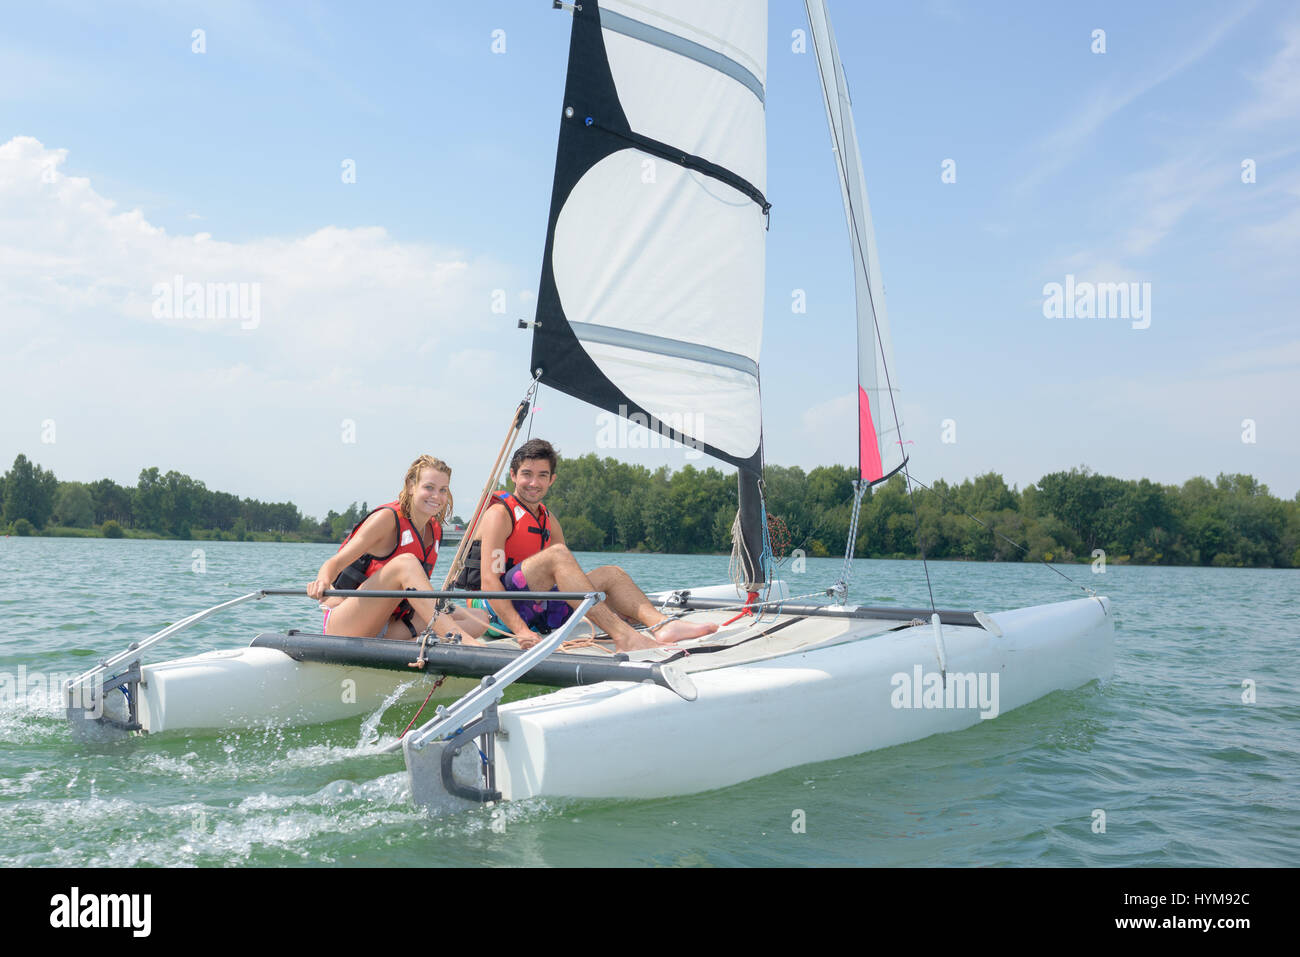 Couple on sailing vessel - Stock Image